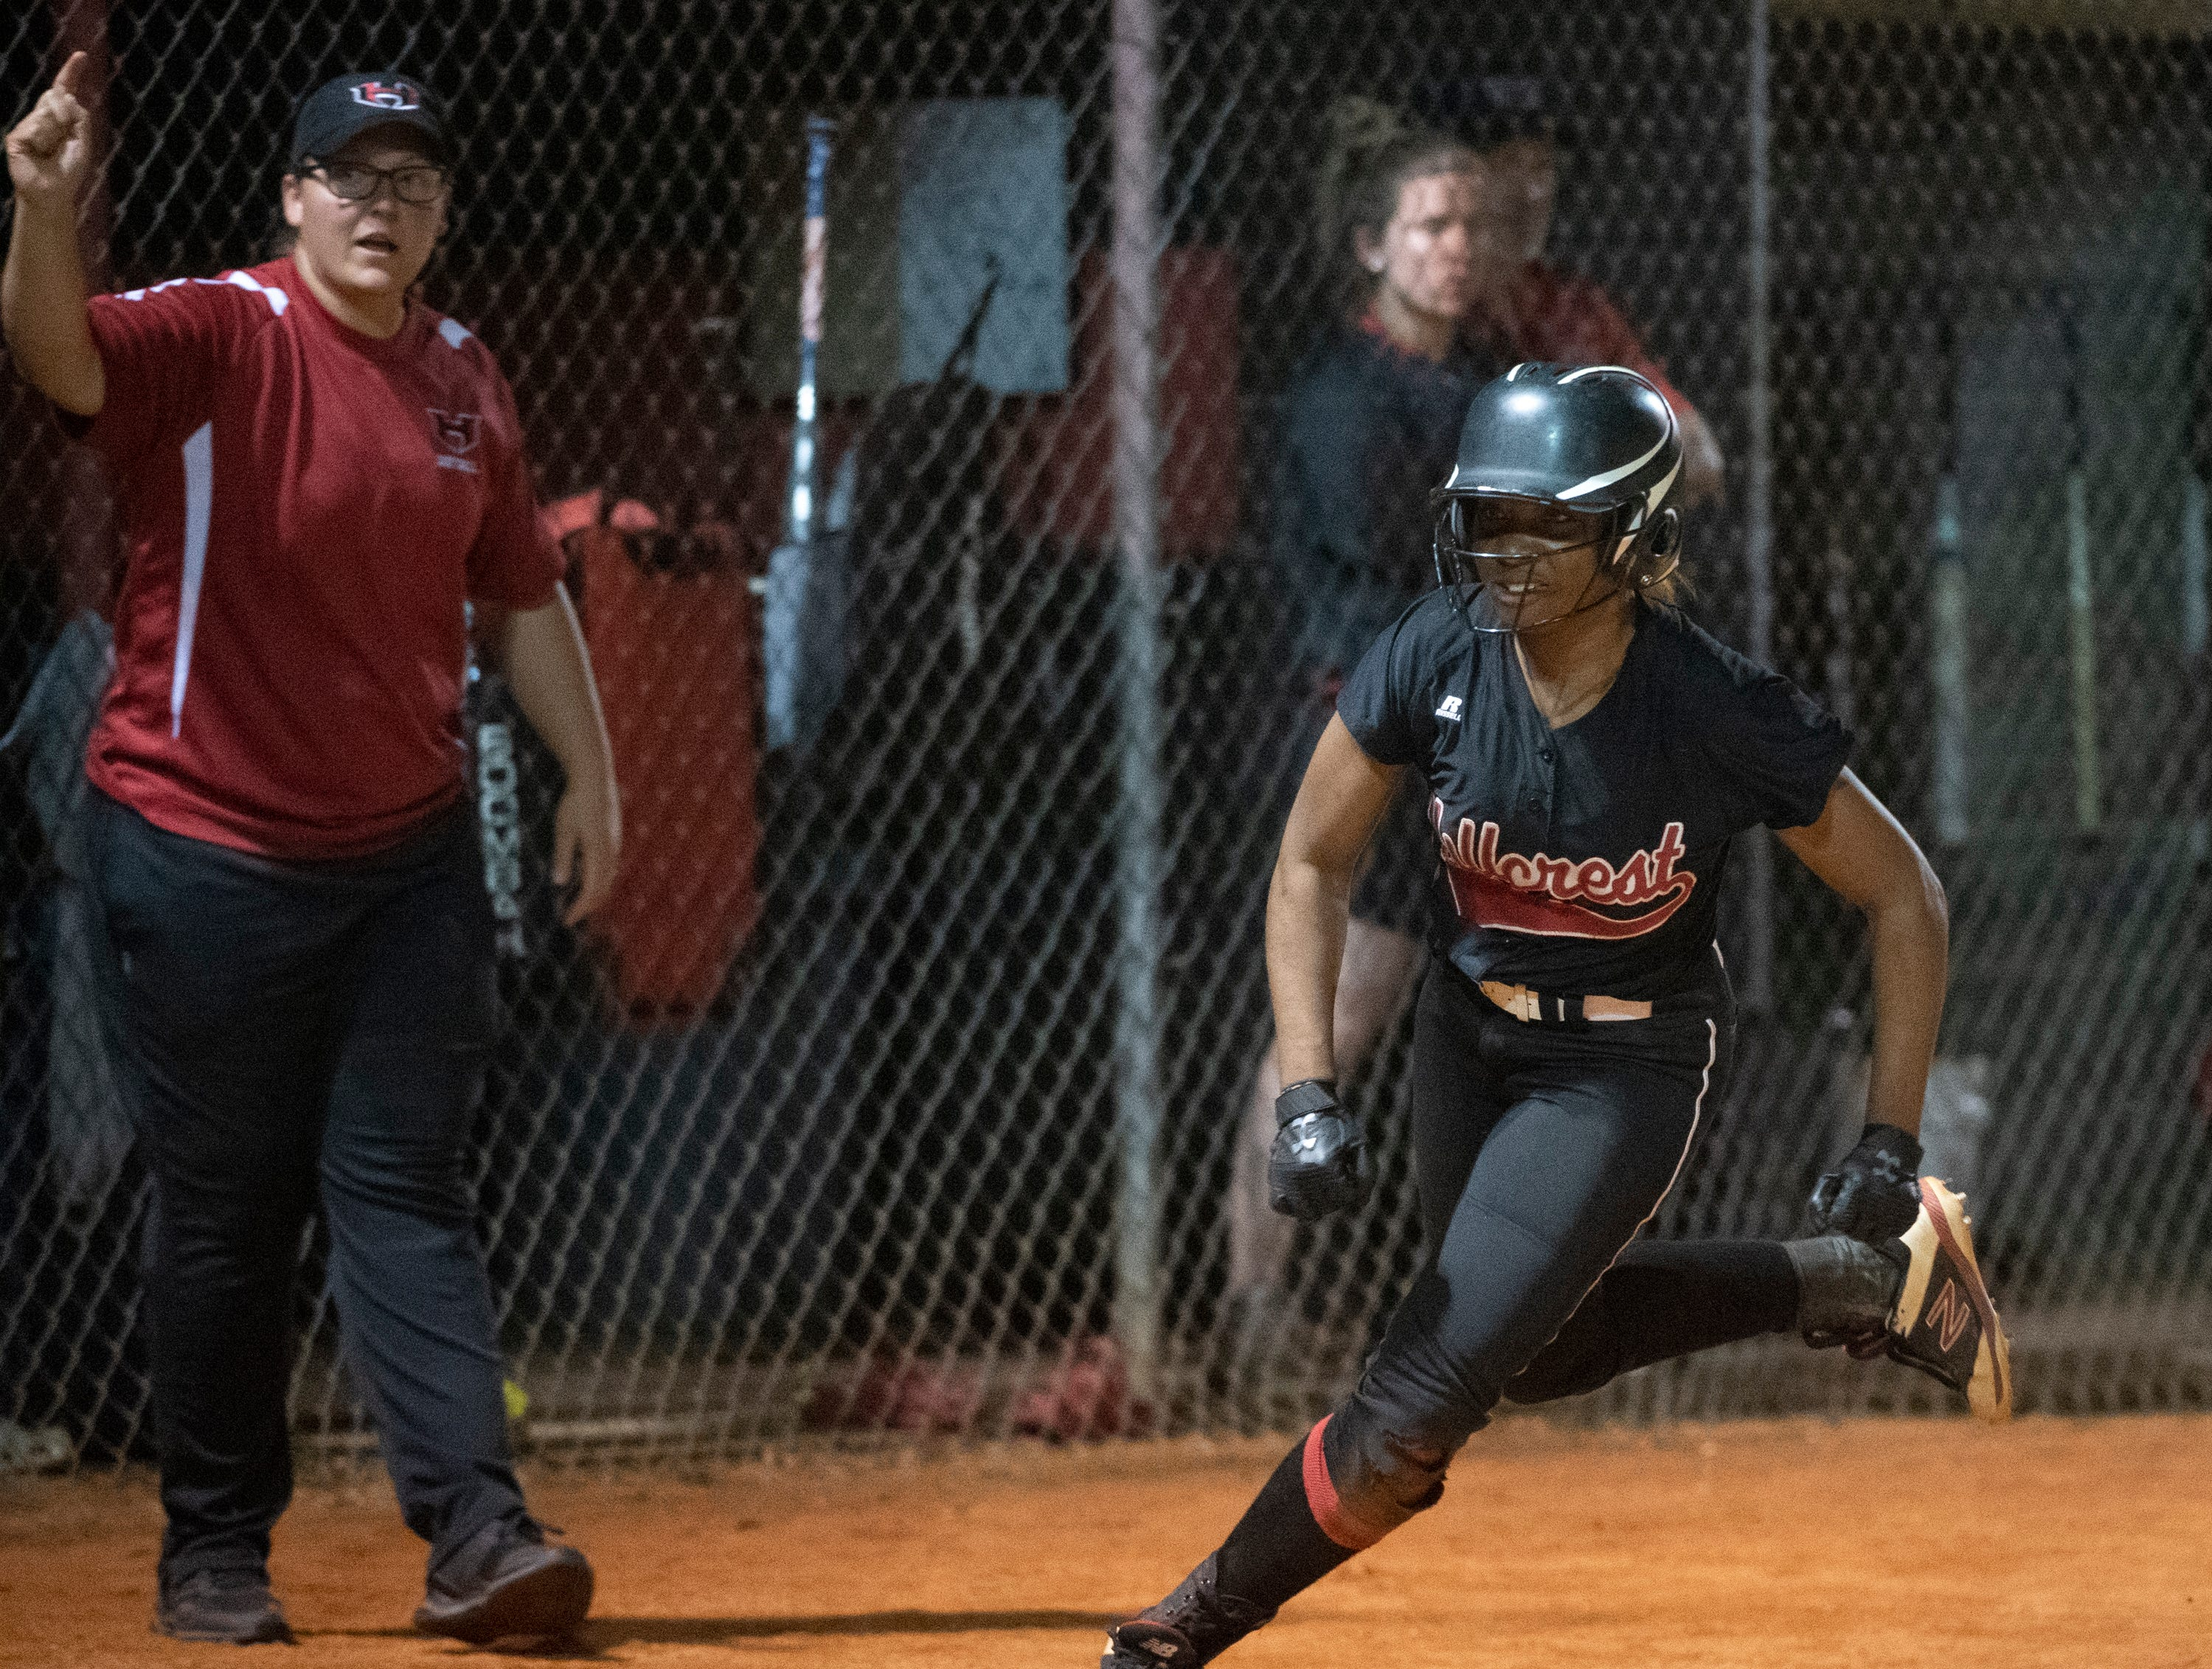 Hillcrest's Alexis Hargrove (24) runs home to score against Boiling Springs High School during the game at Hillcrest Friday, April 12, 2019.